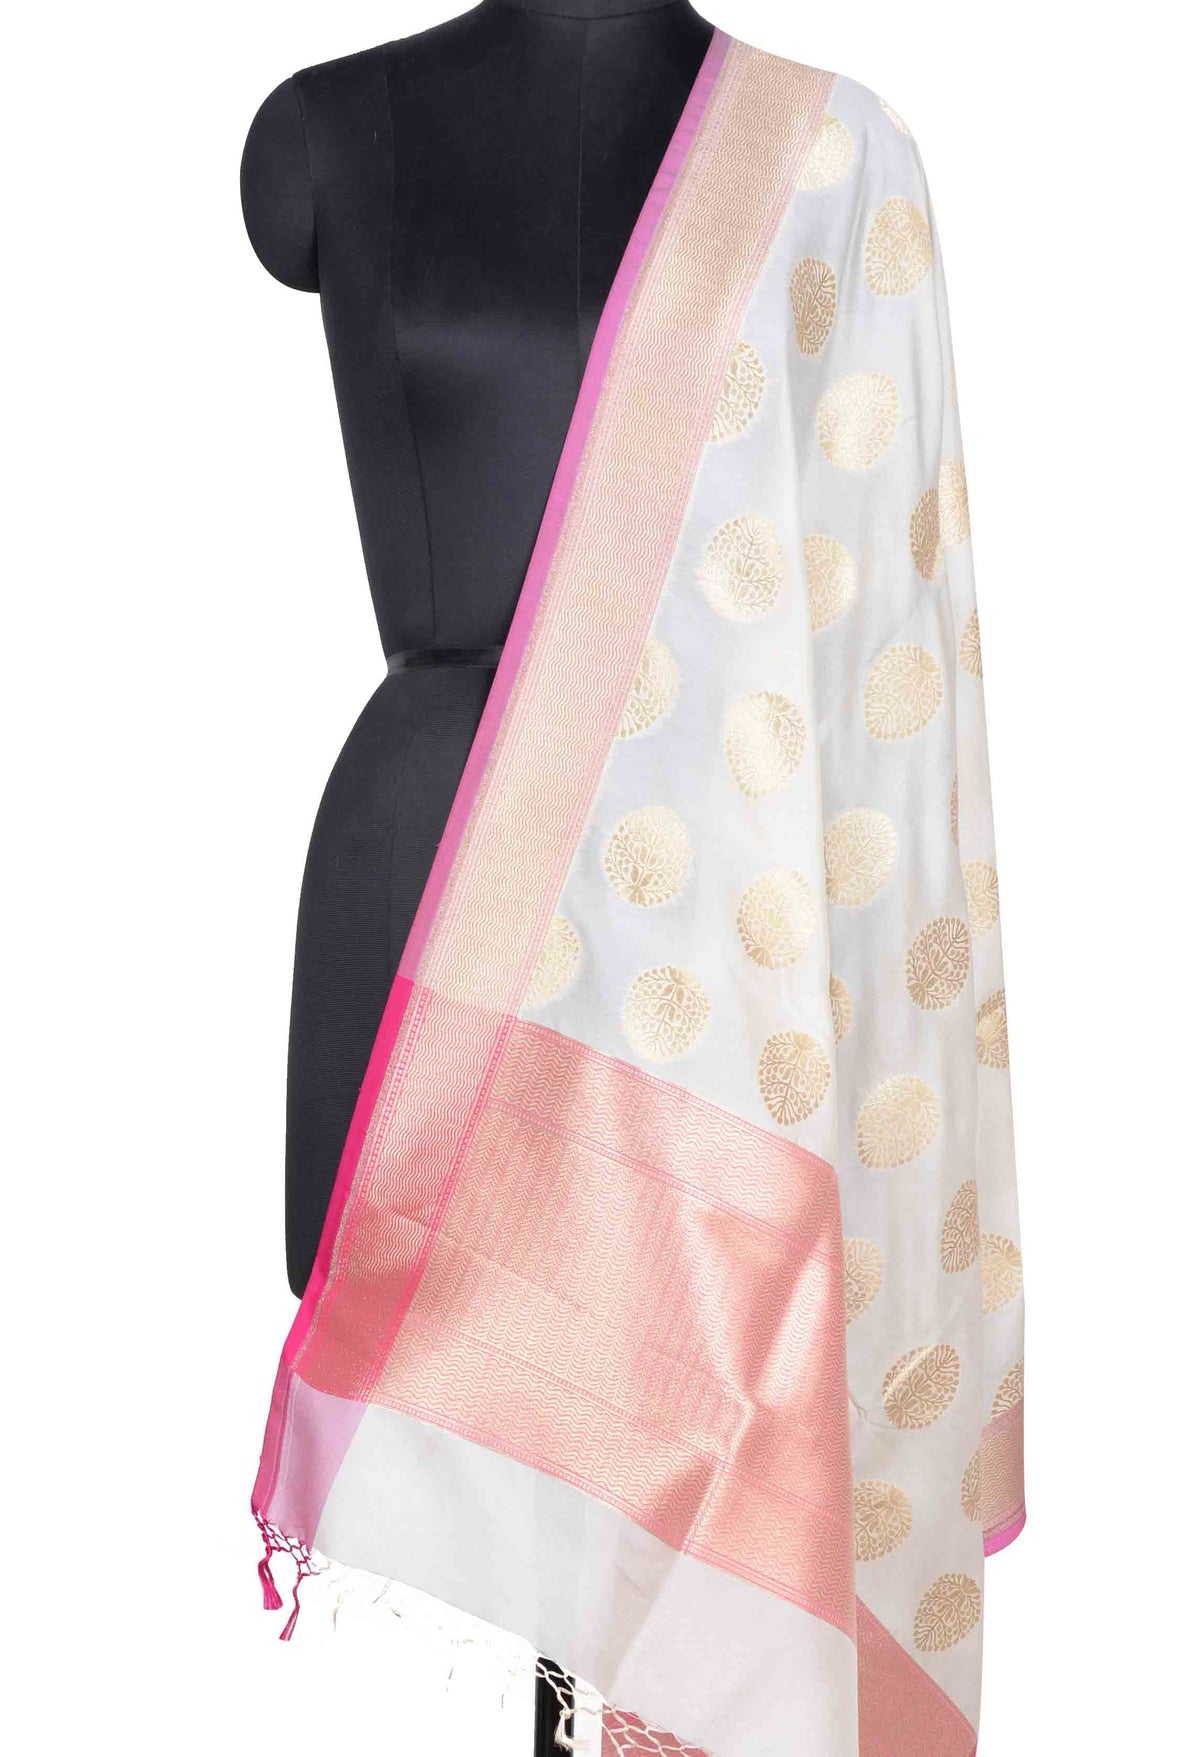 Off White Banarasi dupatta with plant like elliptical motif (1) Main